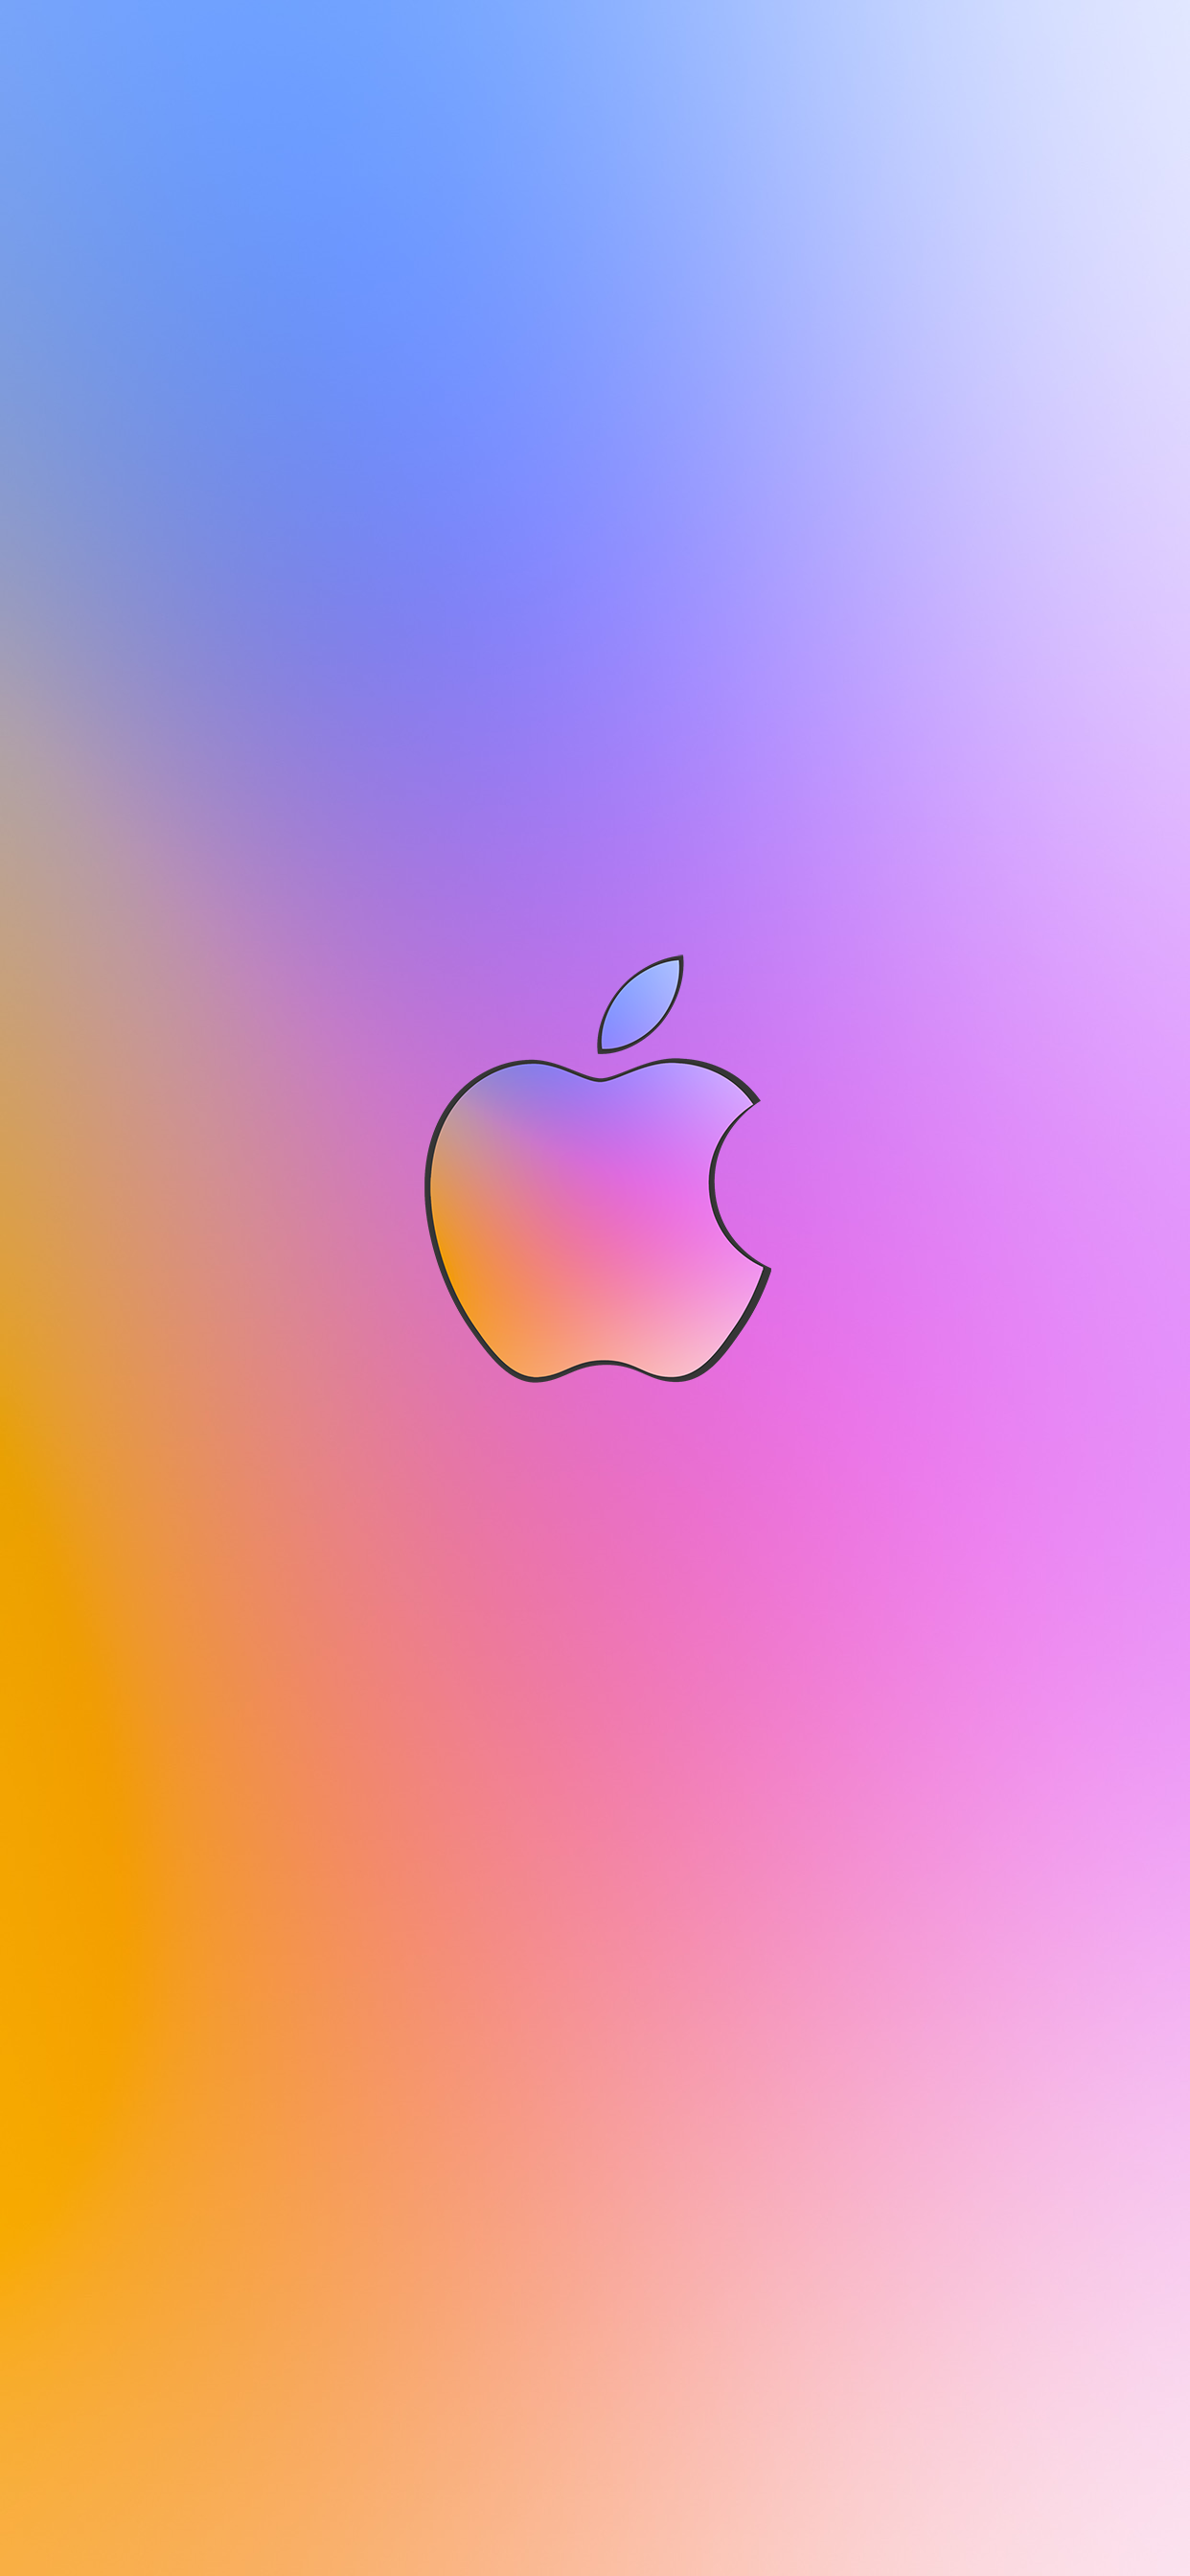 Apple Card wallpapers for iPhone iPad and desktop 1242x2688